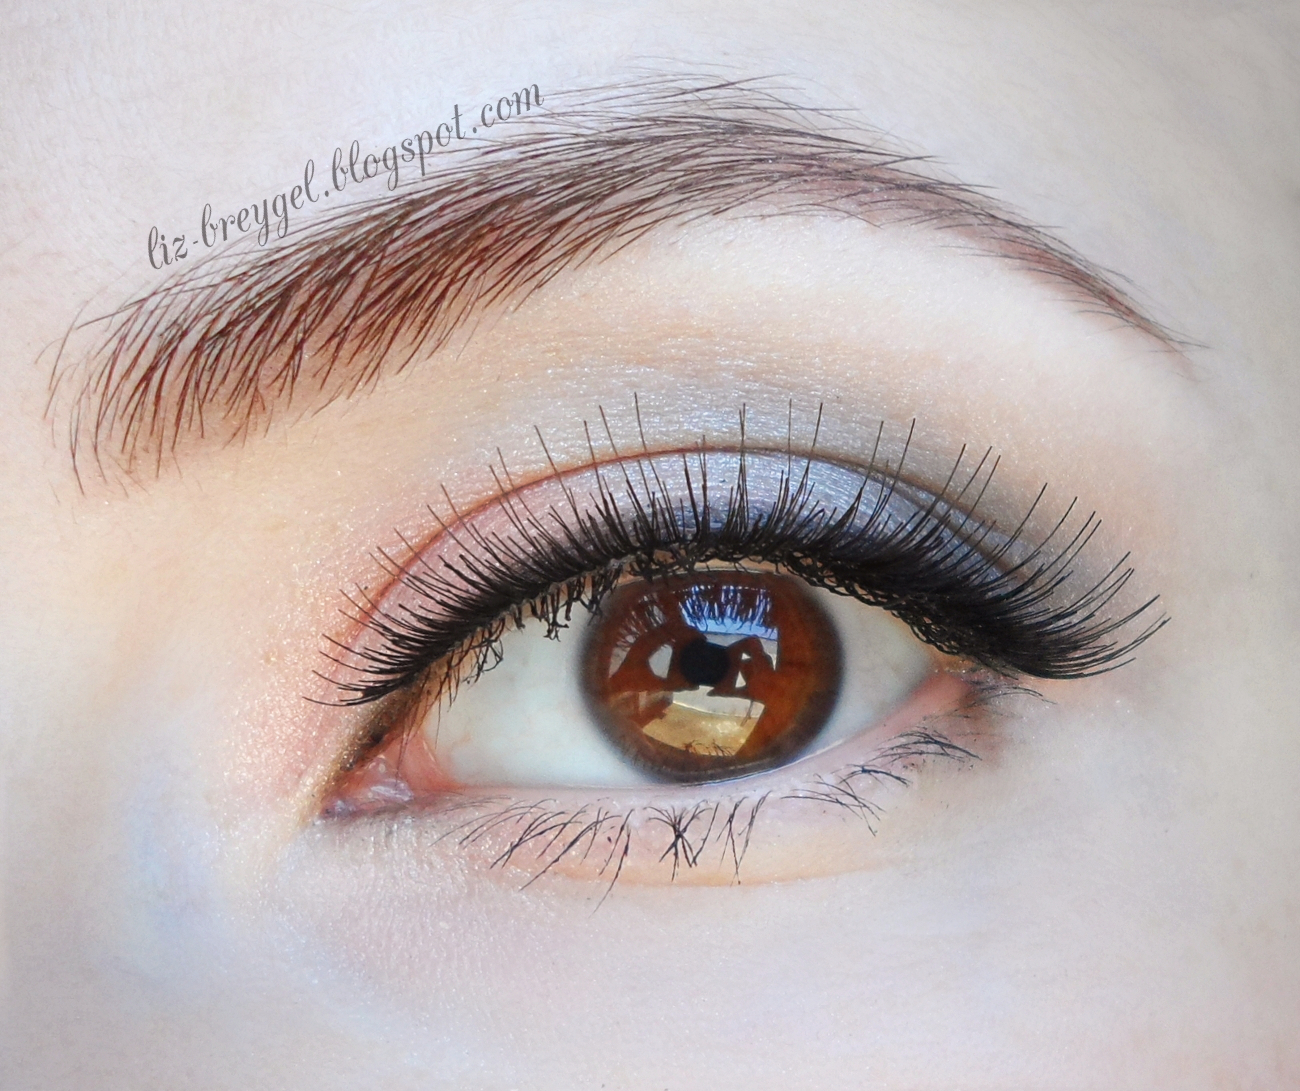 girls eye lashes pictures beautiful beauty angel blogger